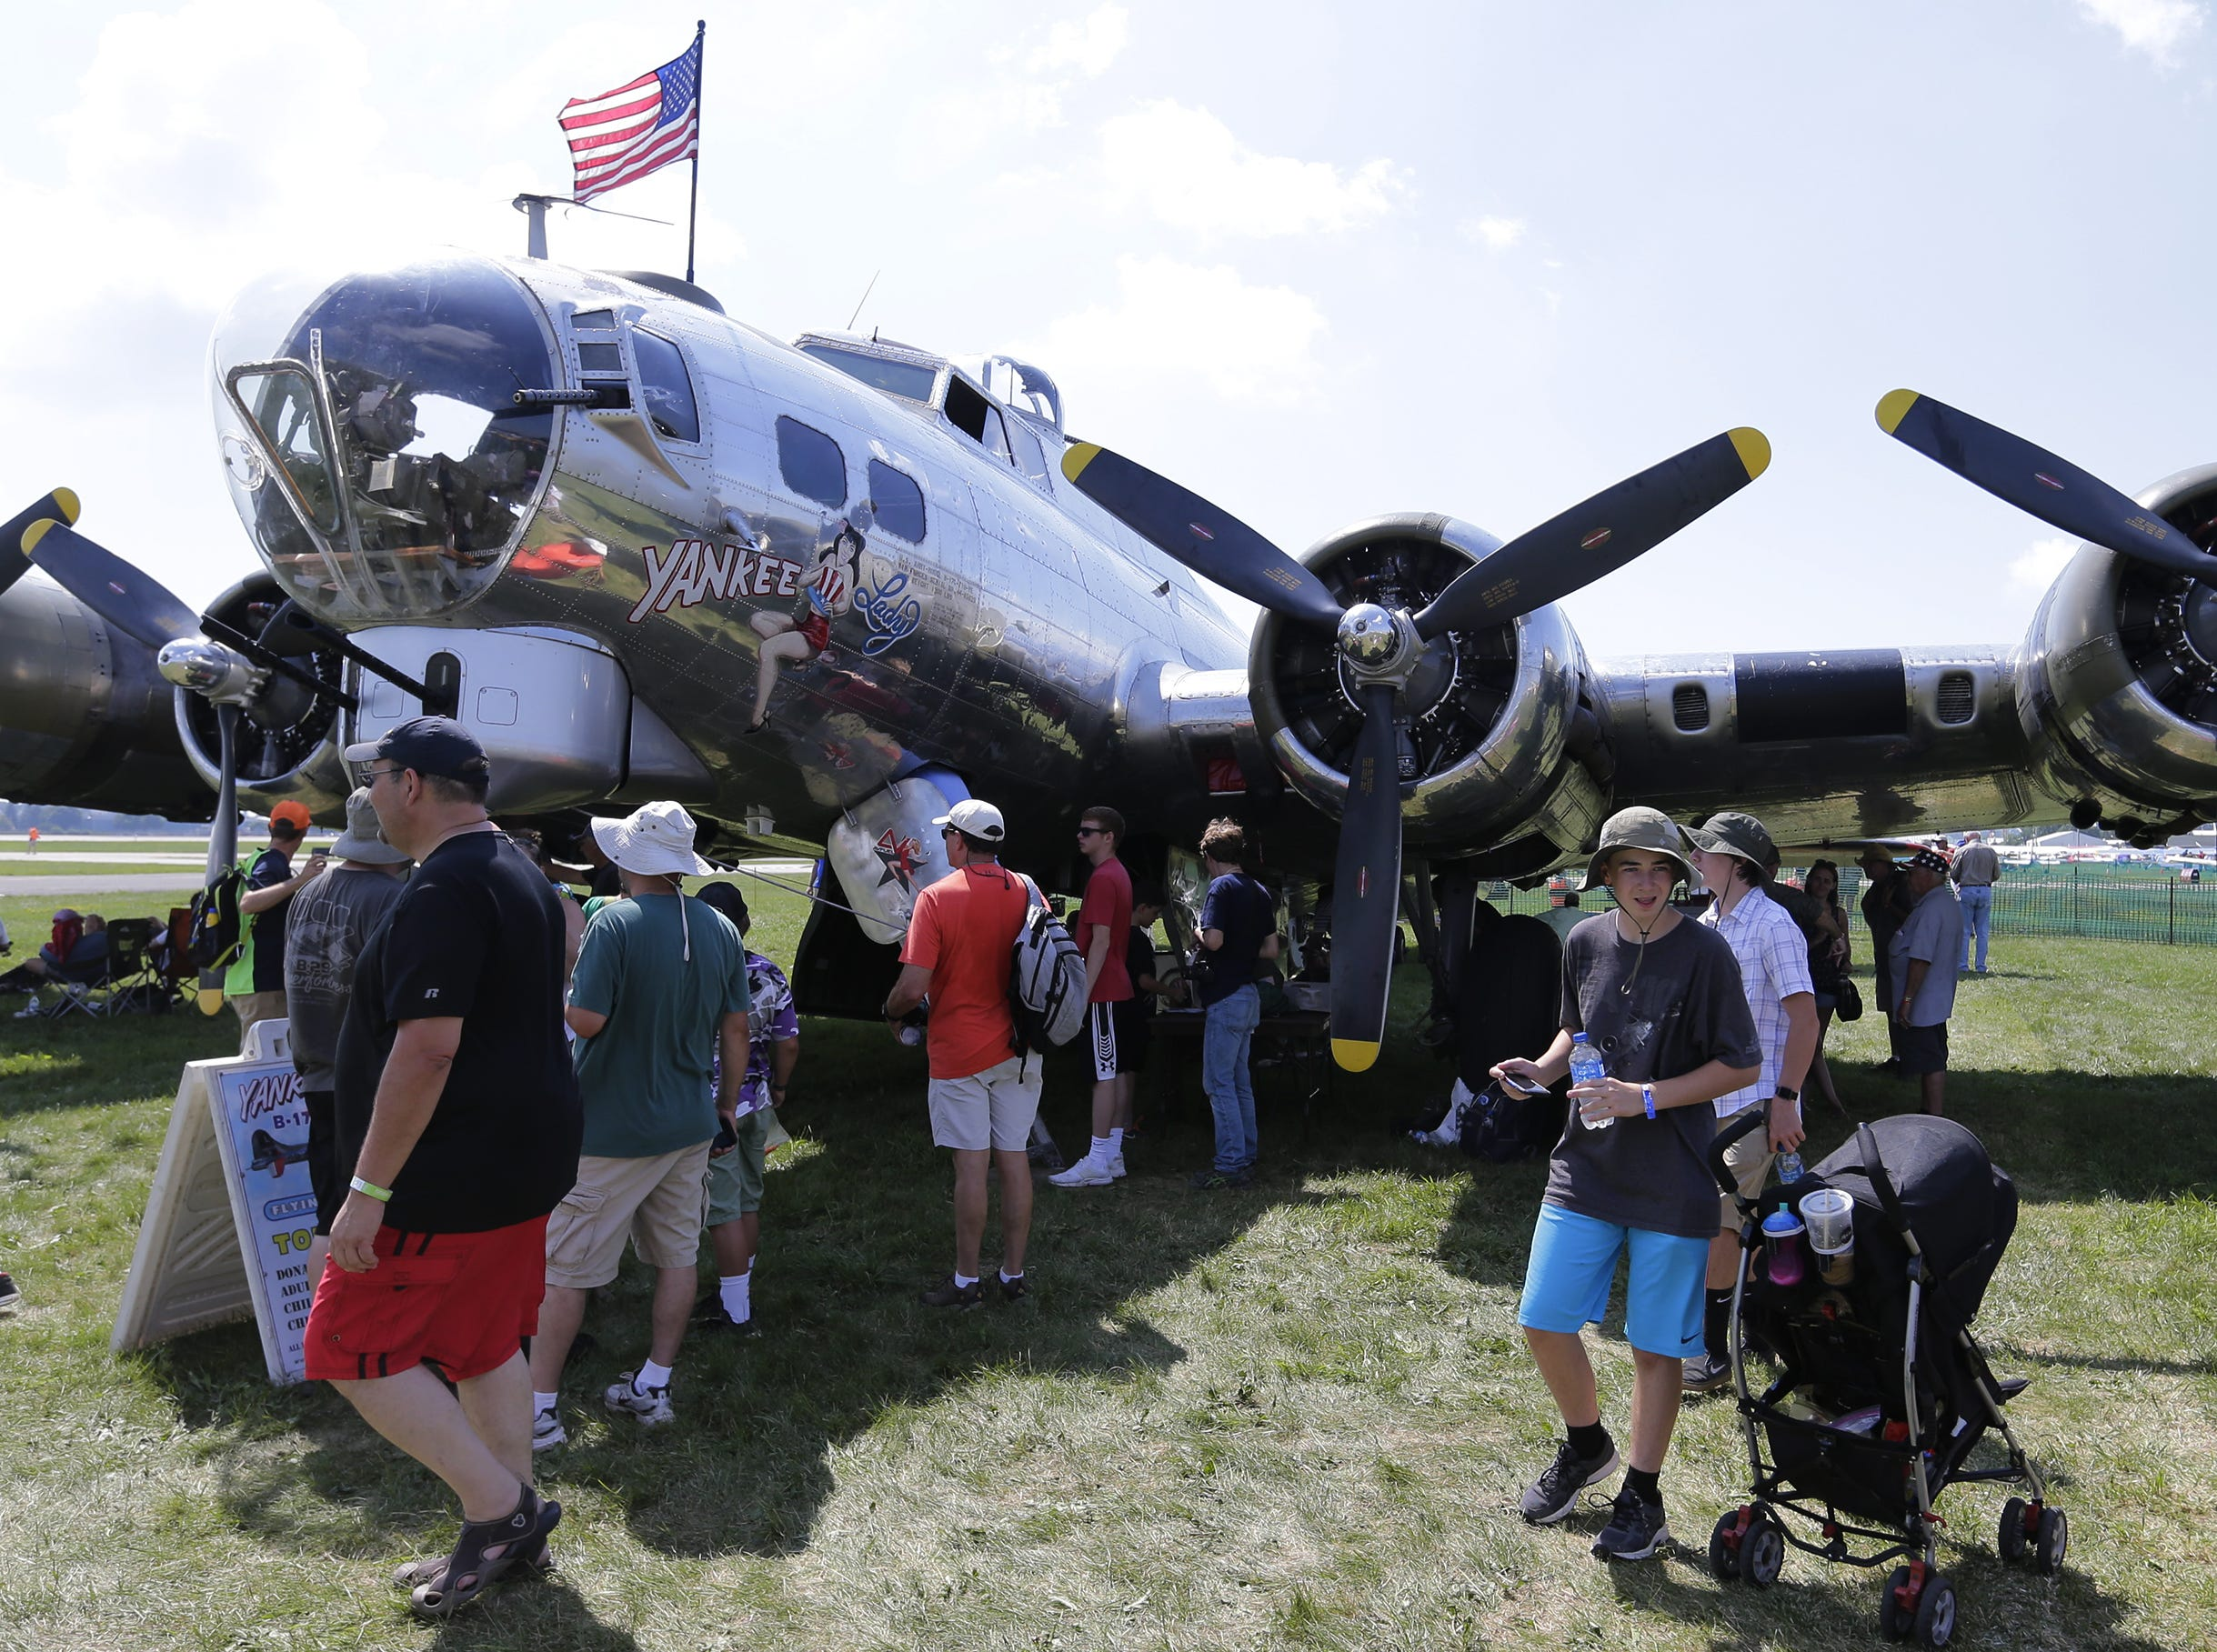 The Yankee Lady B-17G was a popular warbird in the warbird area of AirVenture, Tuesday, July 24, 2018, in Oshkosh, Wis.  The 66th annual Experimental Aircraft Association Fly-In Convention, AirVenture 2018 draws over 500,000 people annually to the area.  The convention runs through July 29. Joe Sienkiewicz/USA Today NETWORK-Wisconsin